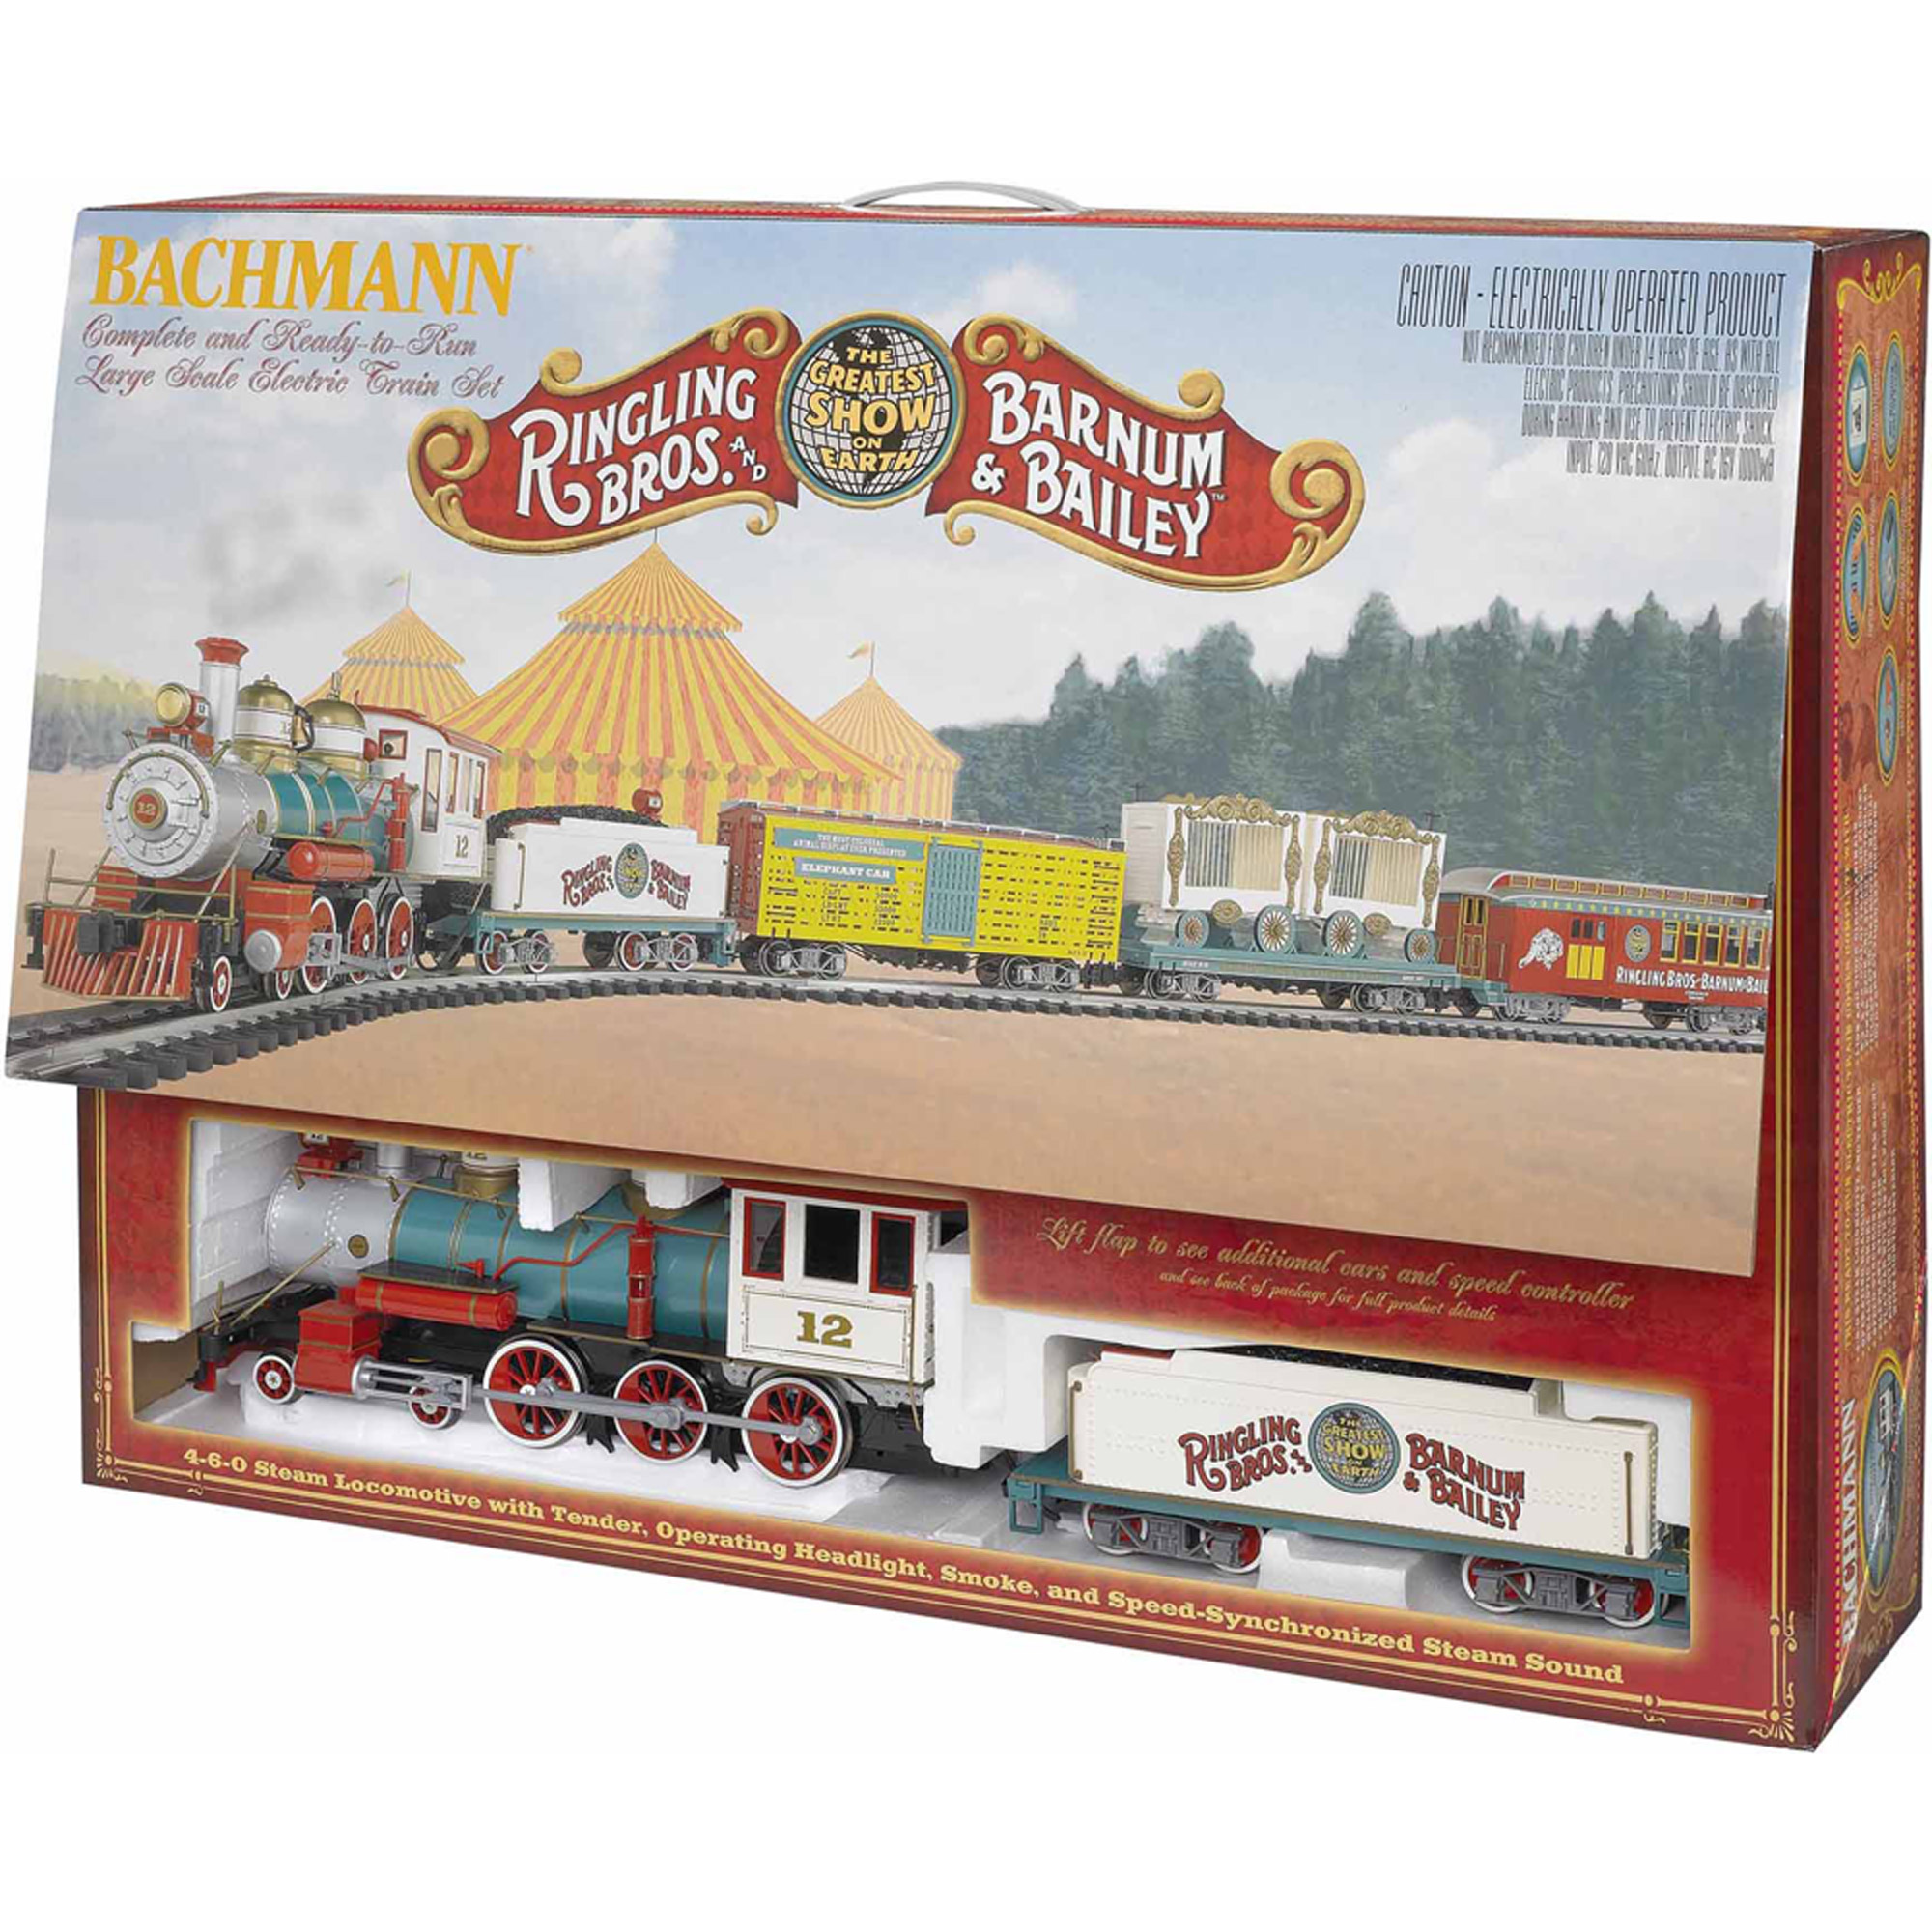 "Bachmann Trains Ringling Bros. And Barnum and Bailey , Large ""G"" Scale Ready-to-Run Electric Train Set"